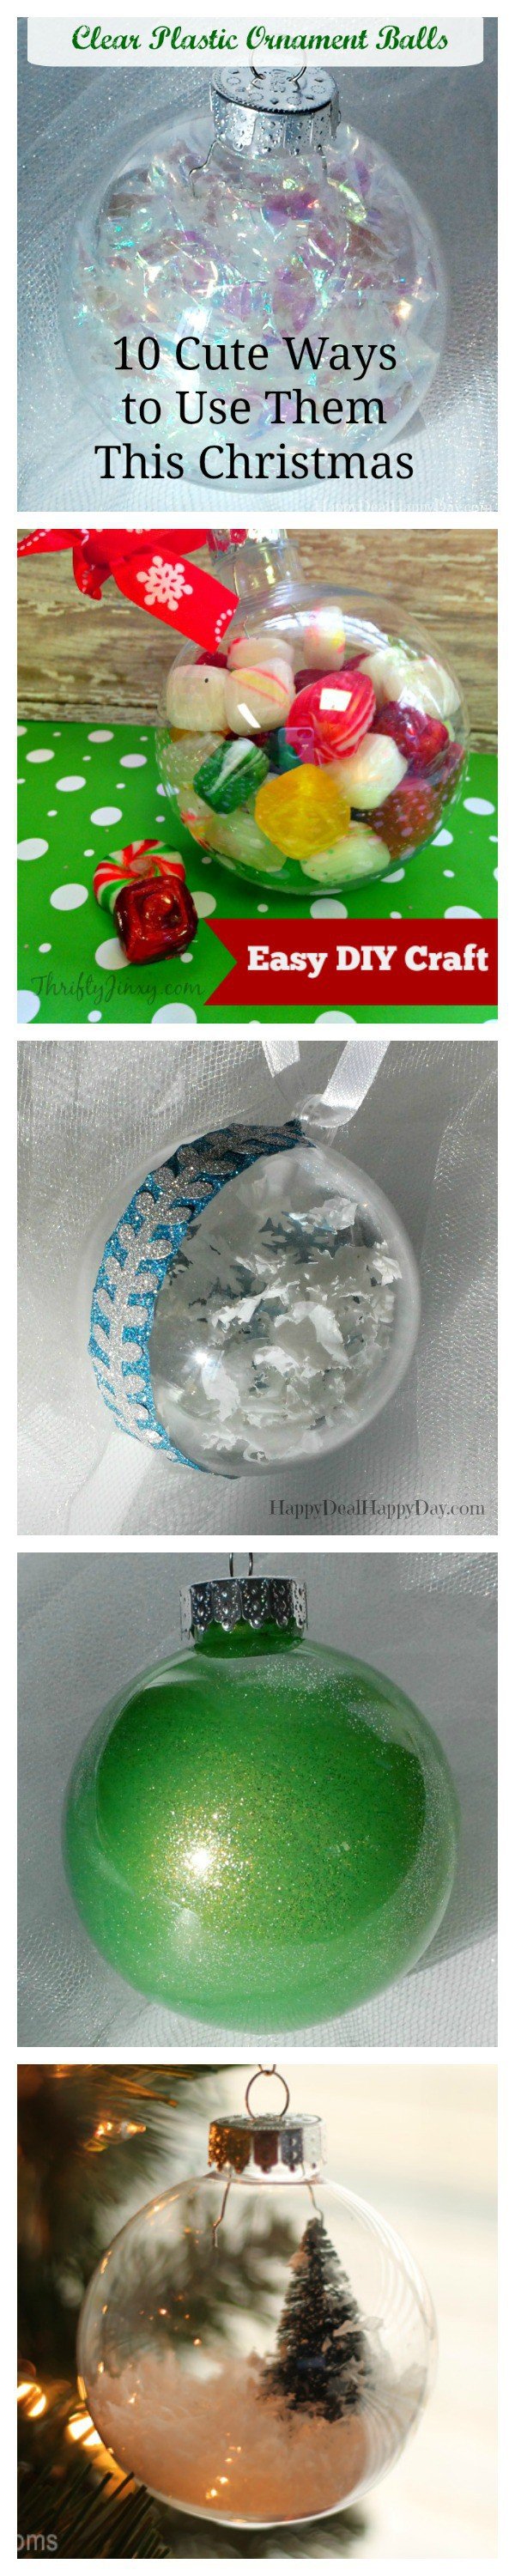 Clear Plastic Ornament Balls - 10 Cute Ways to Use Them This Christmas.  Many cute ideas in this post!   I love the variety of color in #3!  GO HERE to see them all:http://wp.me/pUbK5-t8N